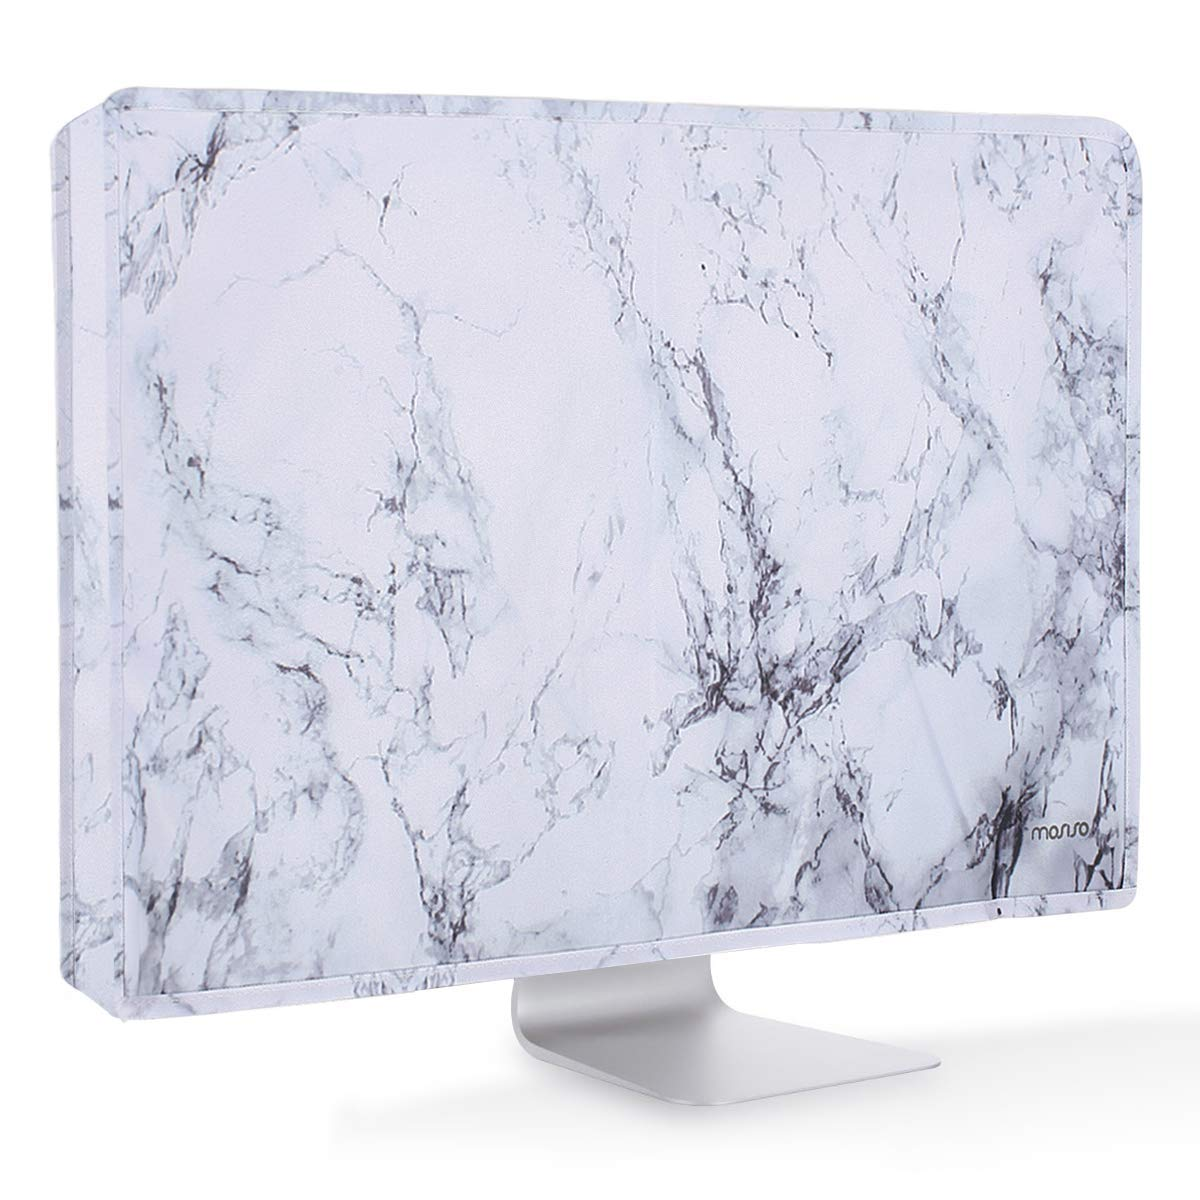 Space Gray Desktop Computer and TV MOSISO Monitor Dust Cover 22 25 Inch Anti-static LCD//LED//HD Panel Case Screen Dispaly Protective Sleeve Compatible 22-25 Inch iMac PC 23 24